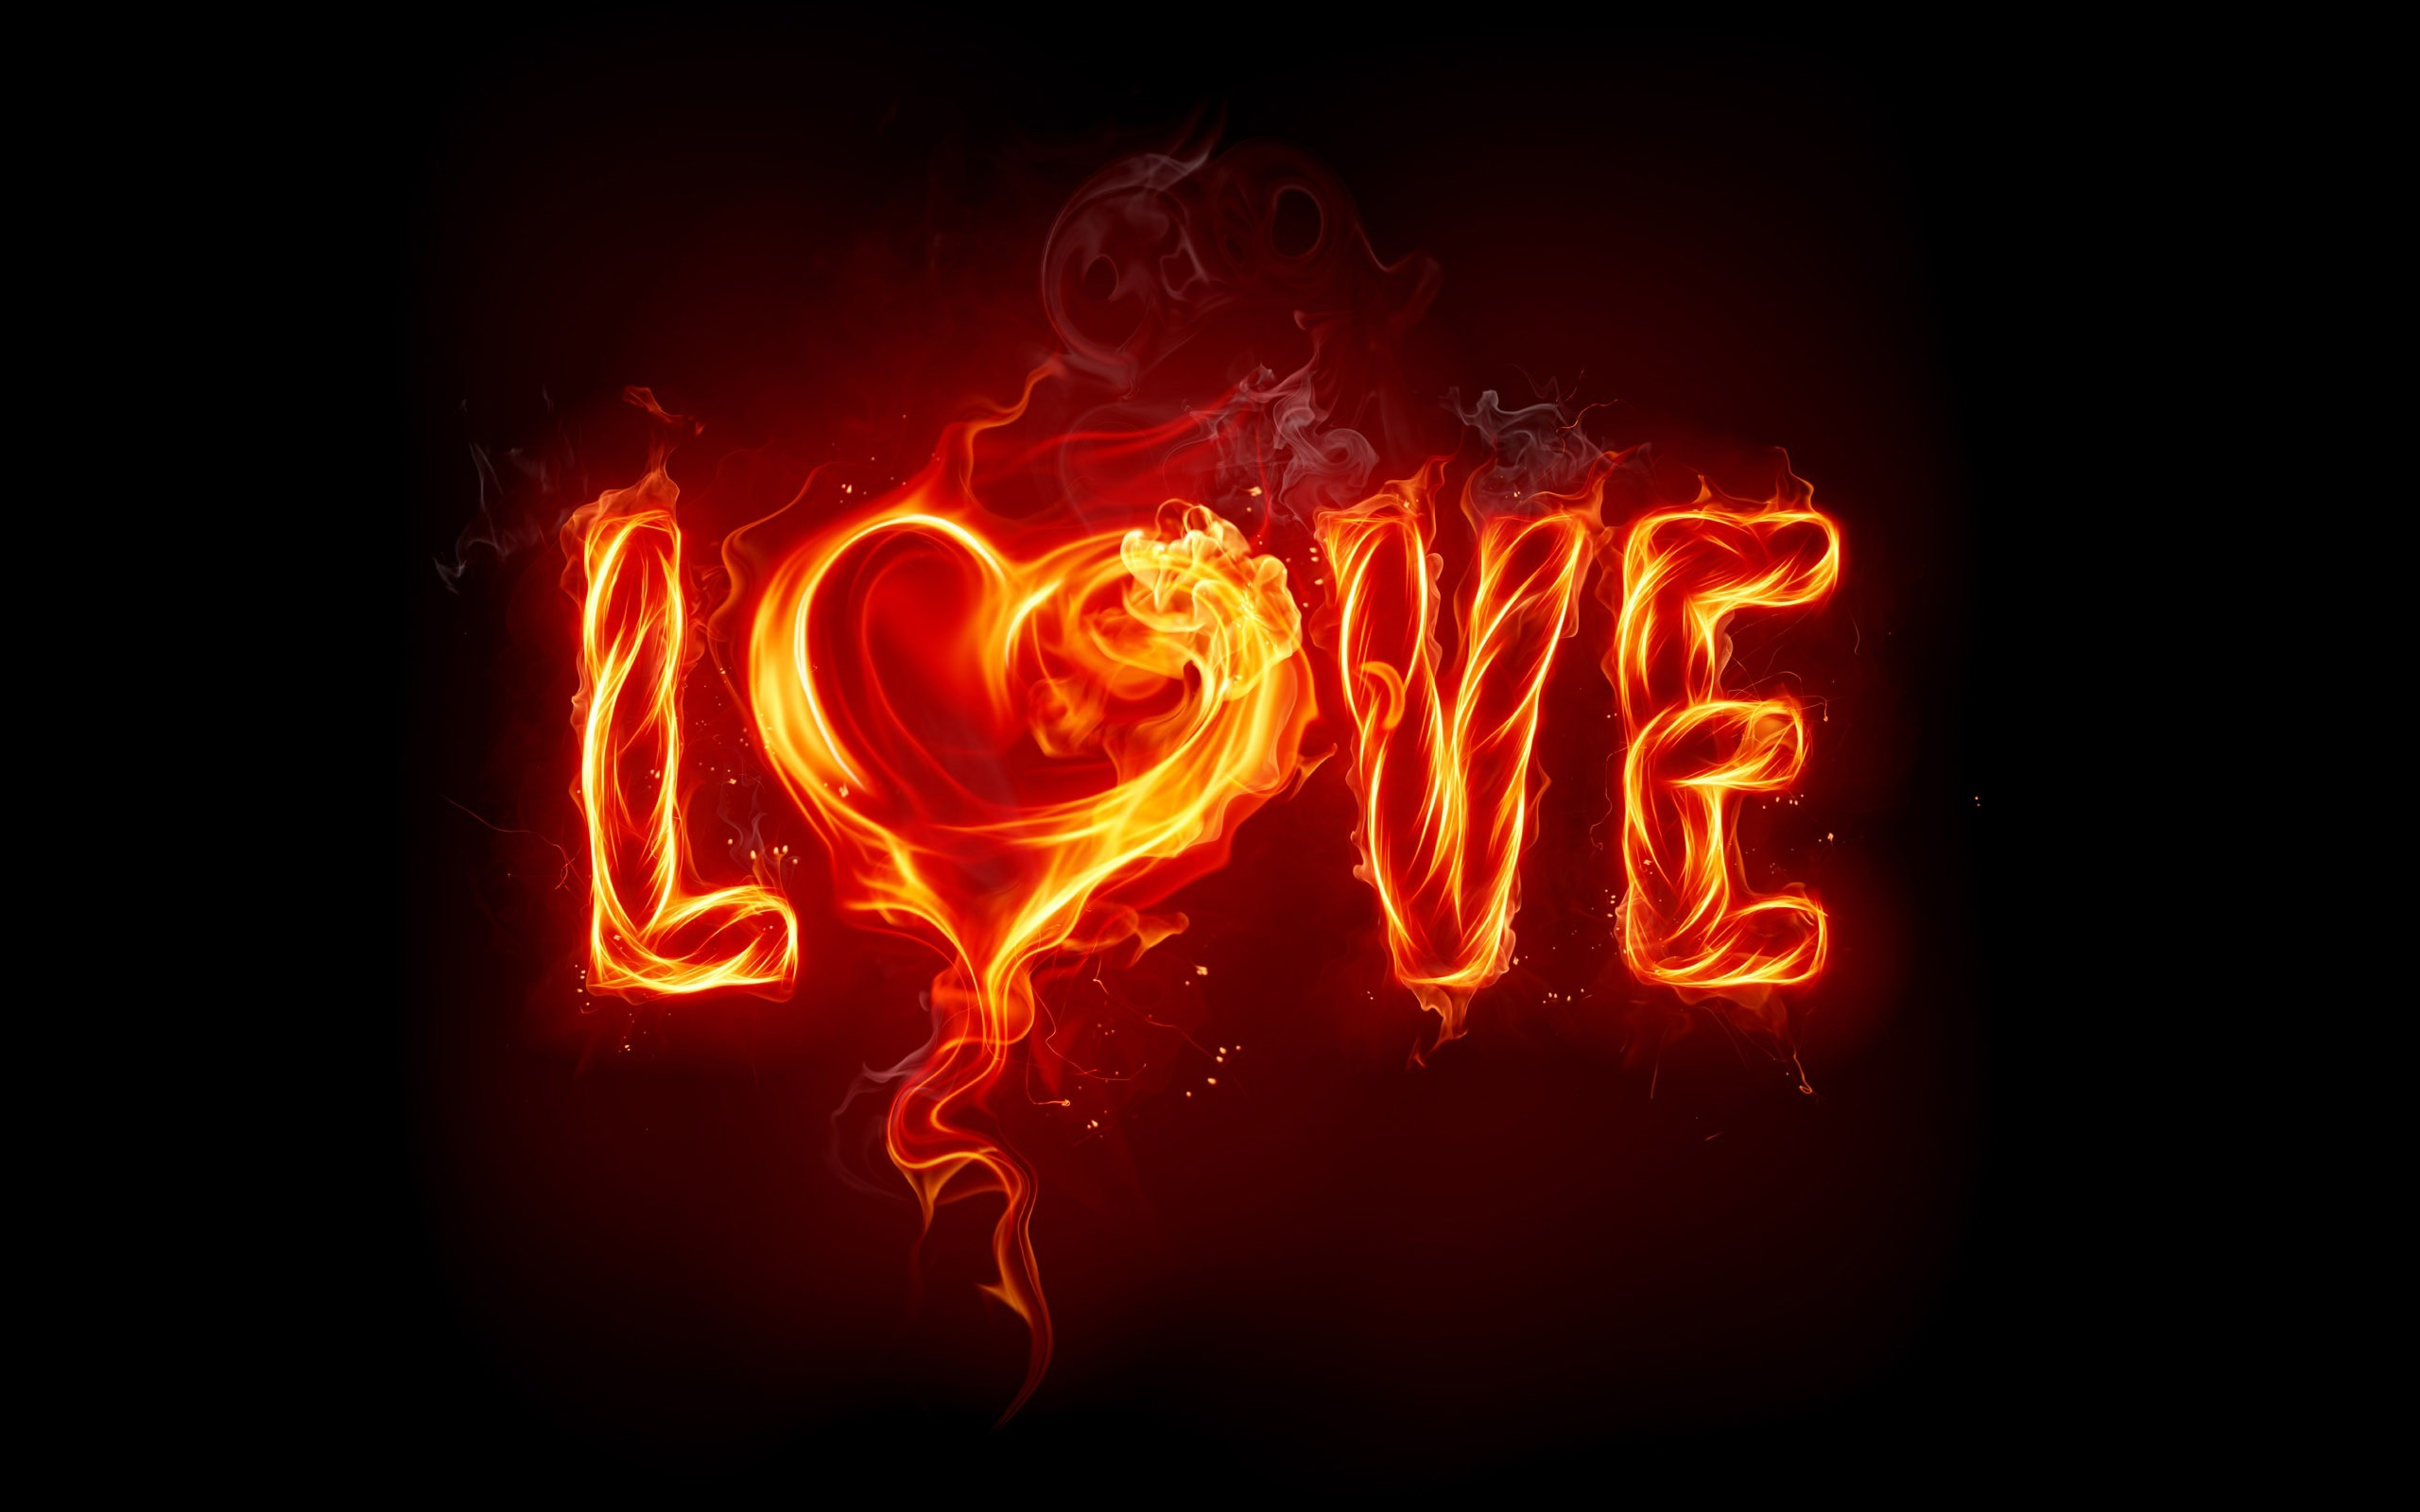 2560x1600 Love Fire Wallpaper Valentines Day Holidays